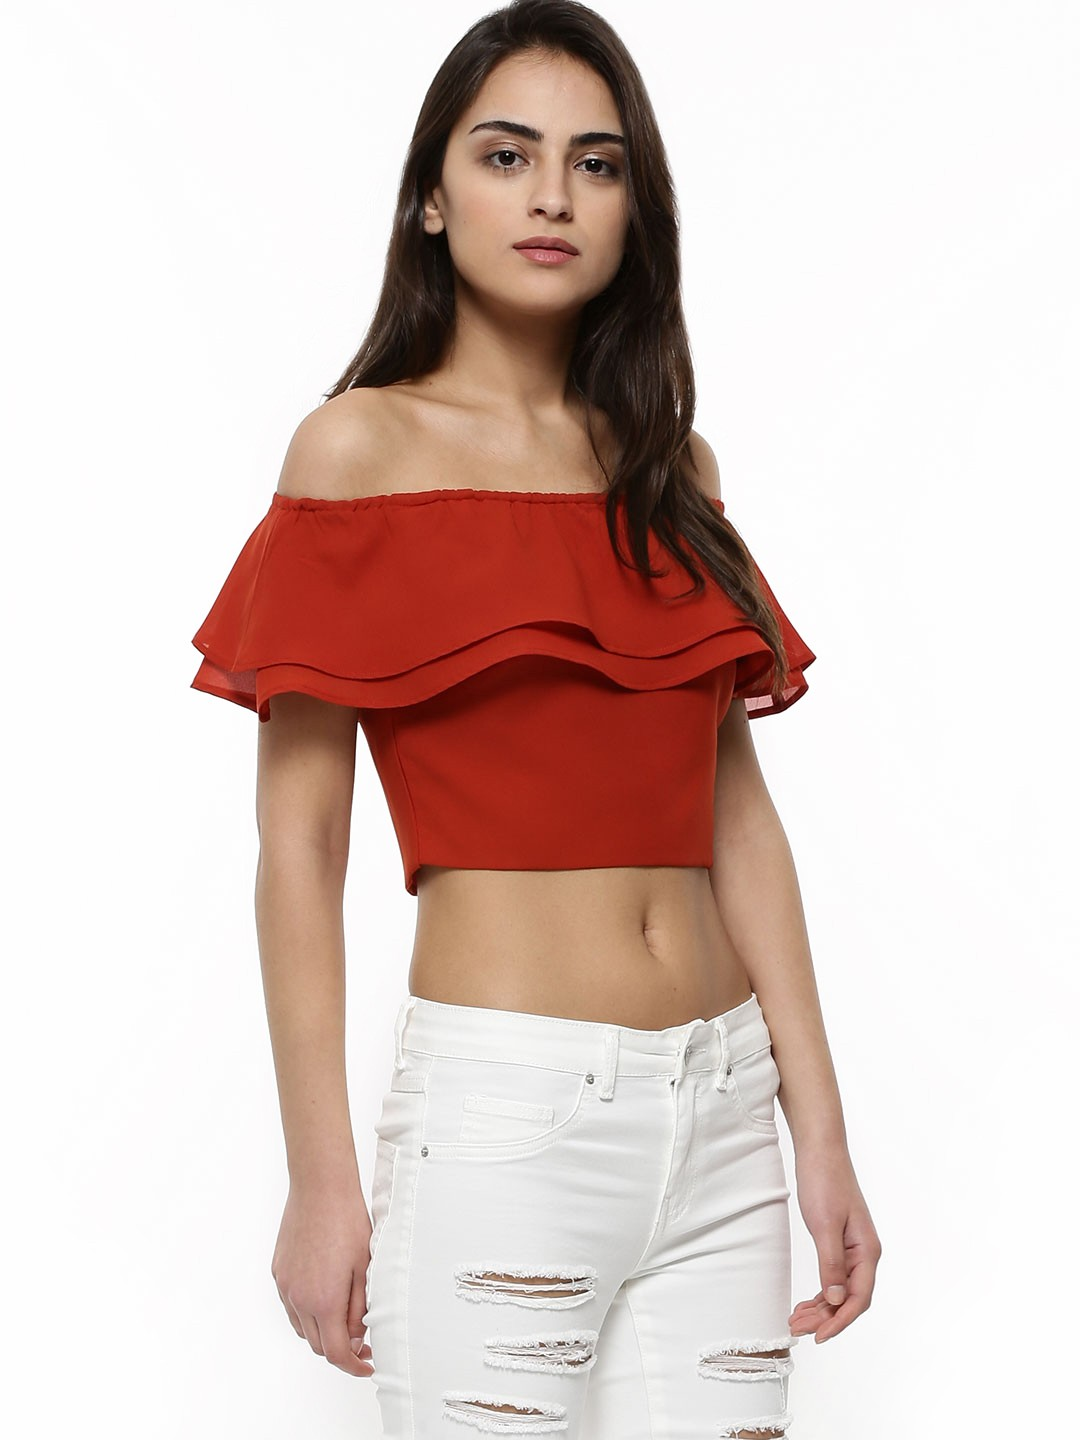 Buy Crop Tops online in India to have easy access to services like cash on delivery, return, refund and exchange. --Moreover, you can also make the payment of the purchased product through online modes like net-banking, credit card/debit card and wallets hence, experiencing a trouble-free moment while shopping.